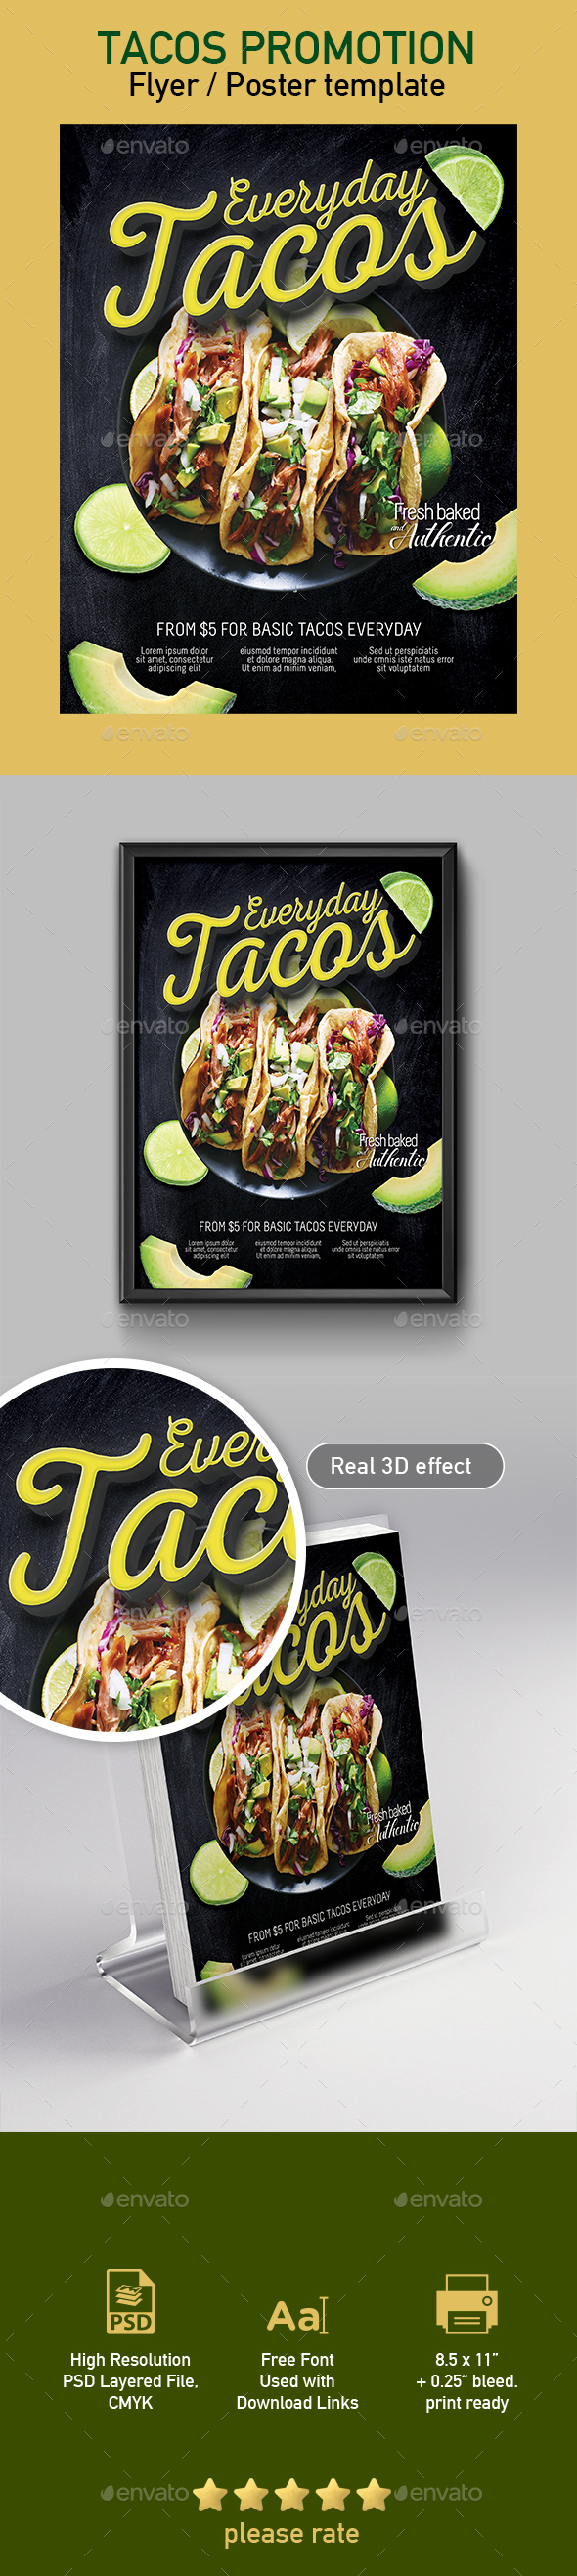 Tacos Flyer / Poster Template - Restaurant Flyers